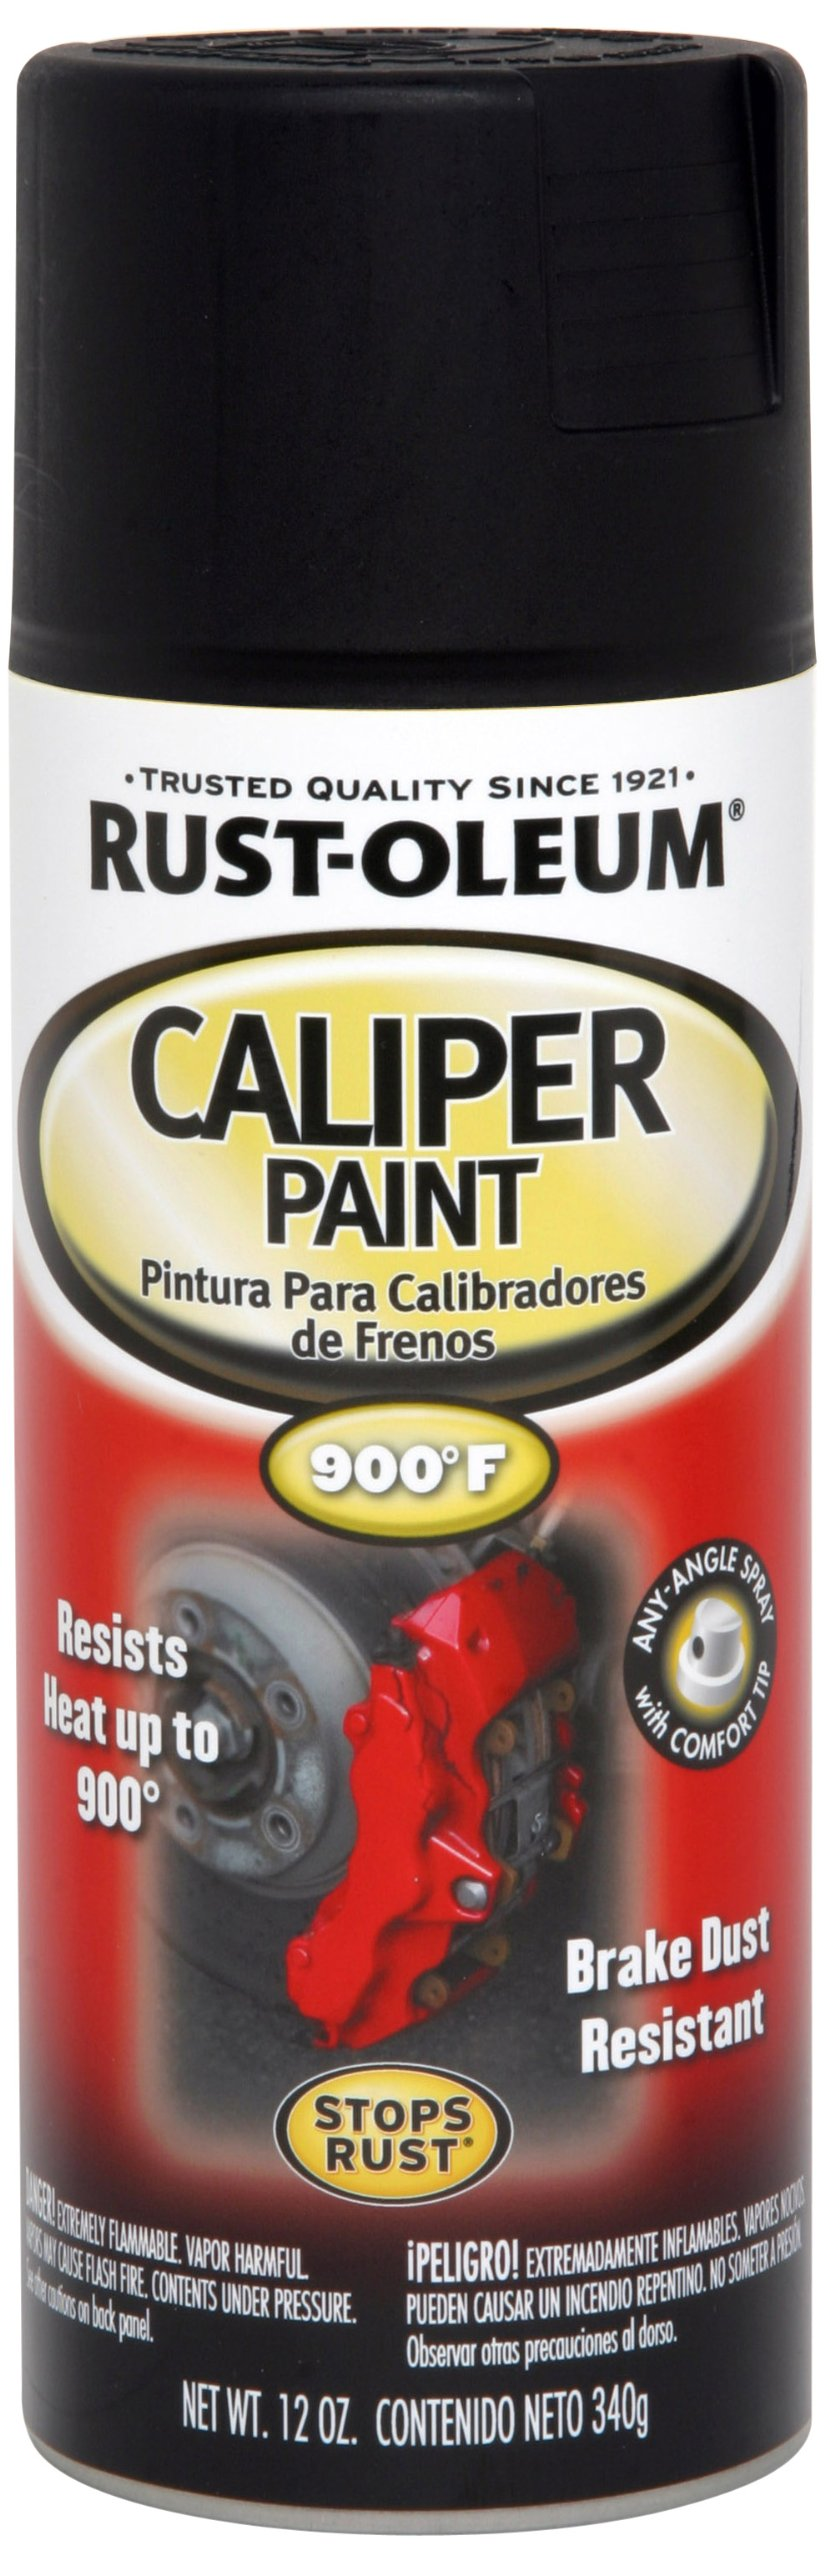 Rust-Oleum 251592 Automotive Caliper Spray Paint, 12 Oz, Black